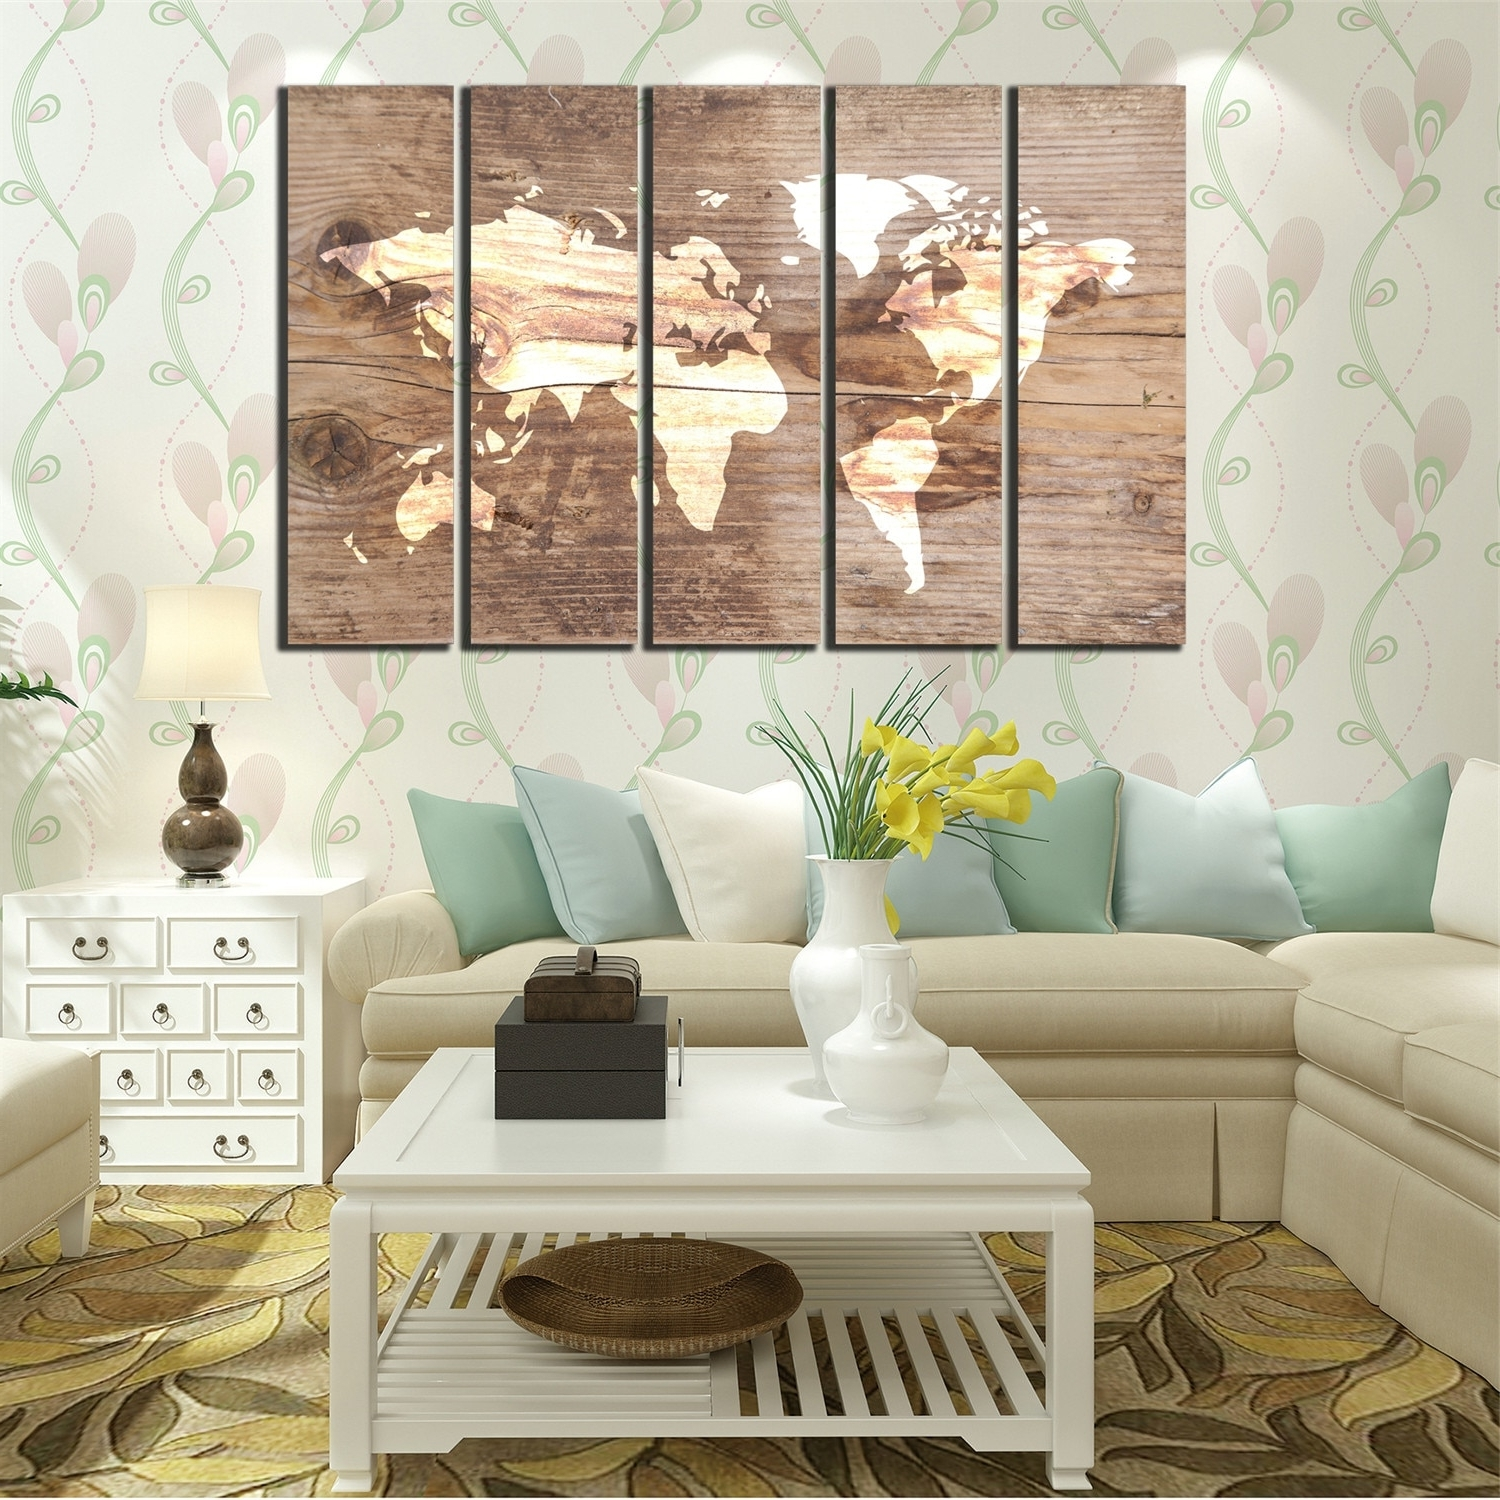 Most Recent Wall Art Canvas Oil Painting Blue And White World Map Poster 5 With Vintage Map Wall Art (View 14 of 15)